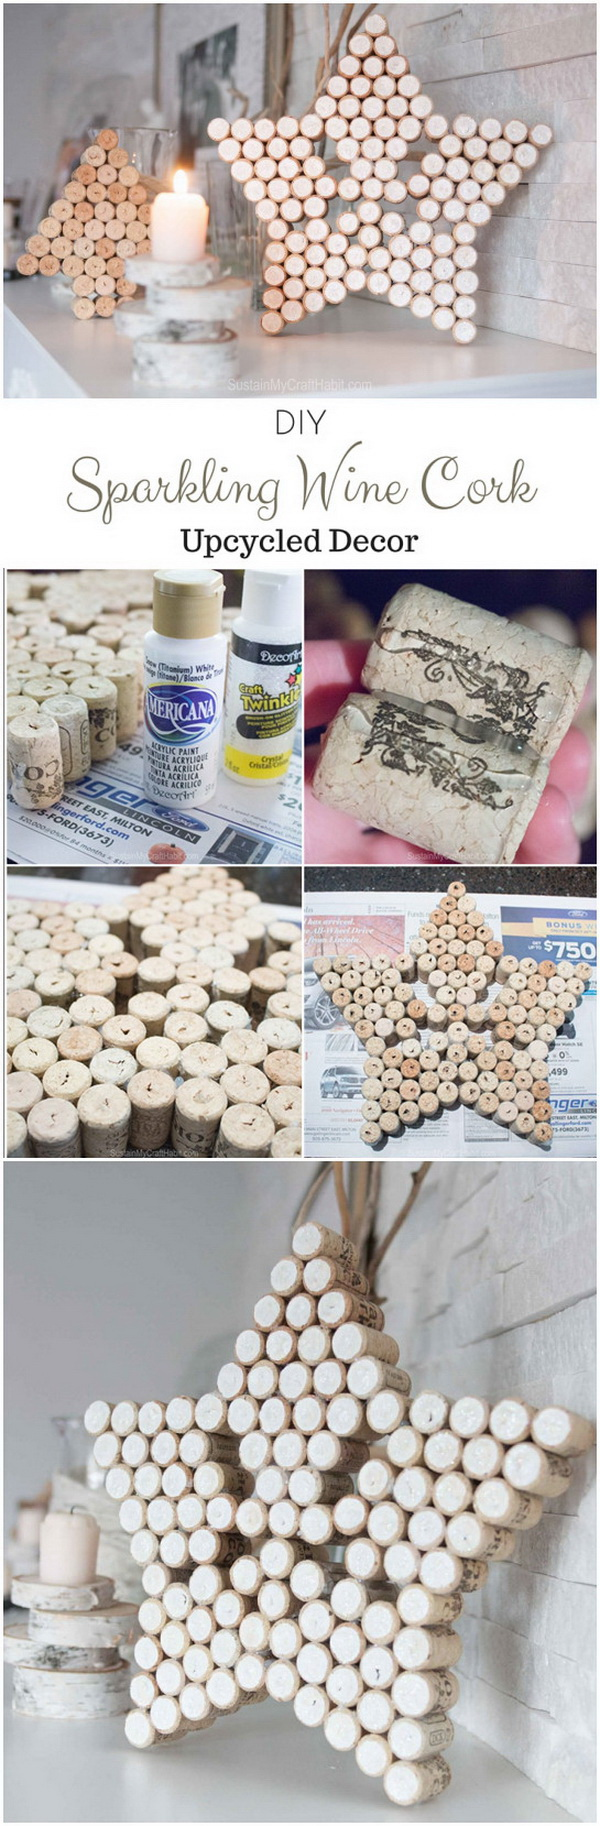 Sparkling Wine Cork Star Decor. Never throw away those leftover wine corks and you can collect them and turn them into a sparkling and beautiful decorative star for your winter or Christmas mantle decorations!